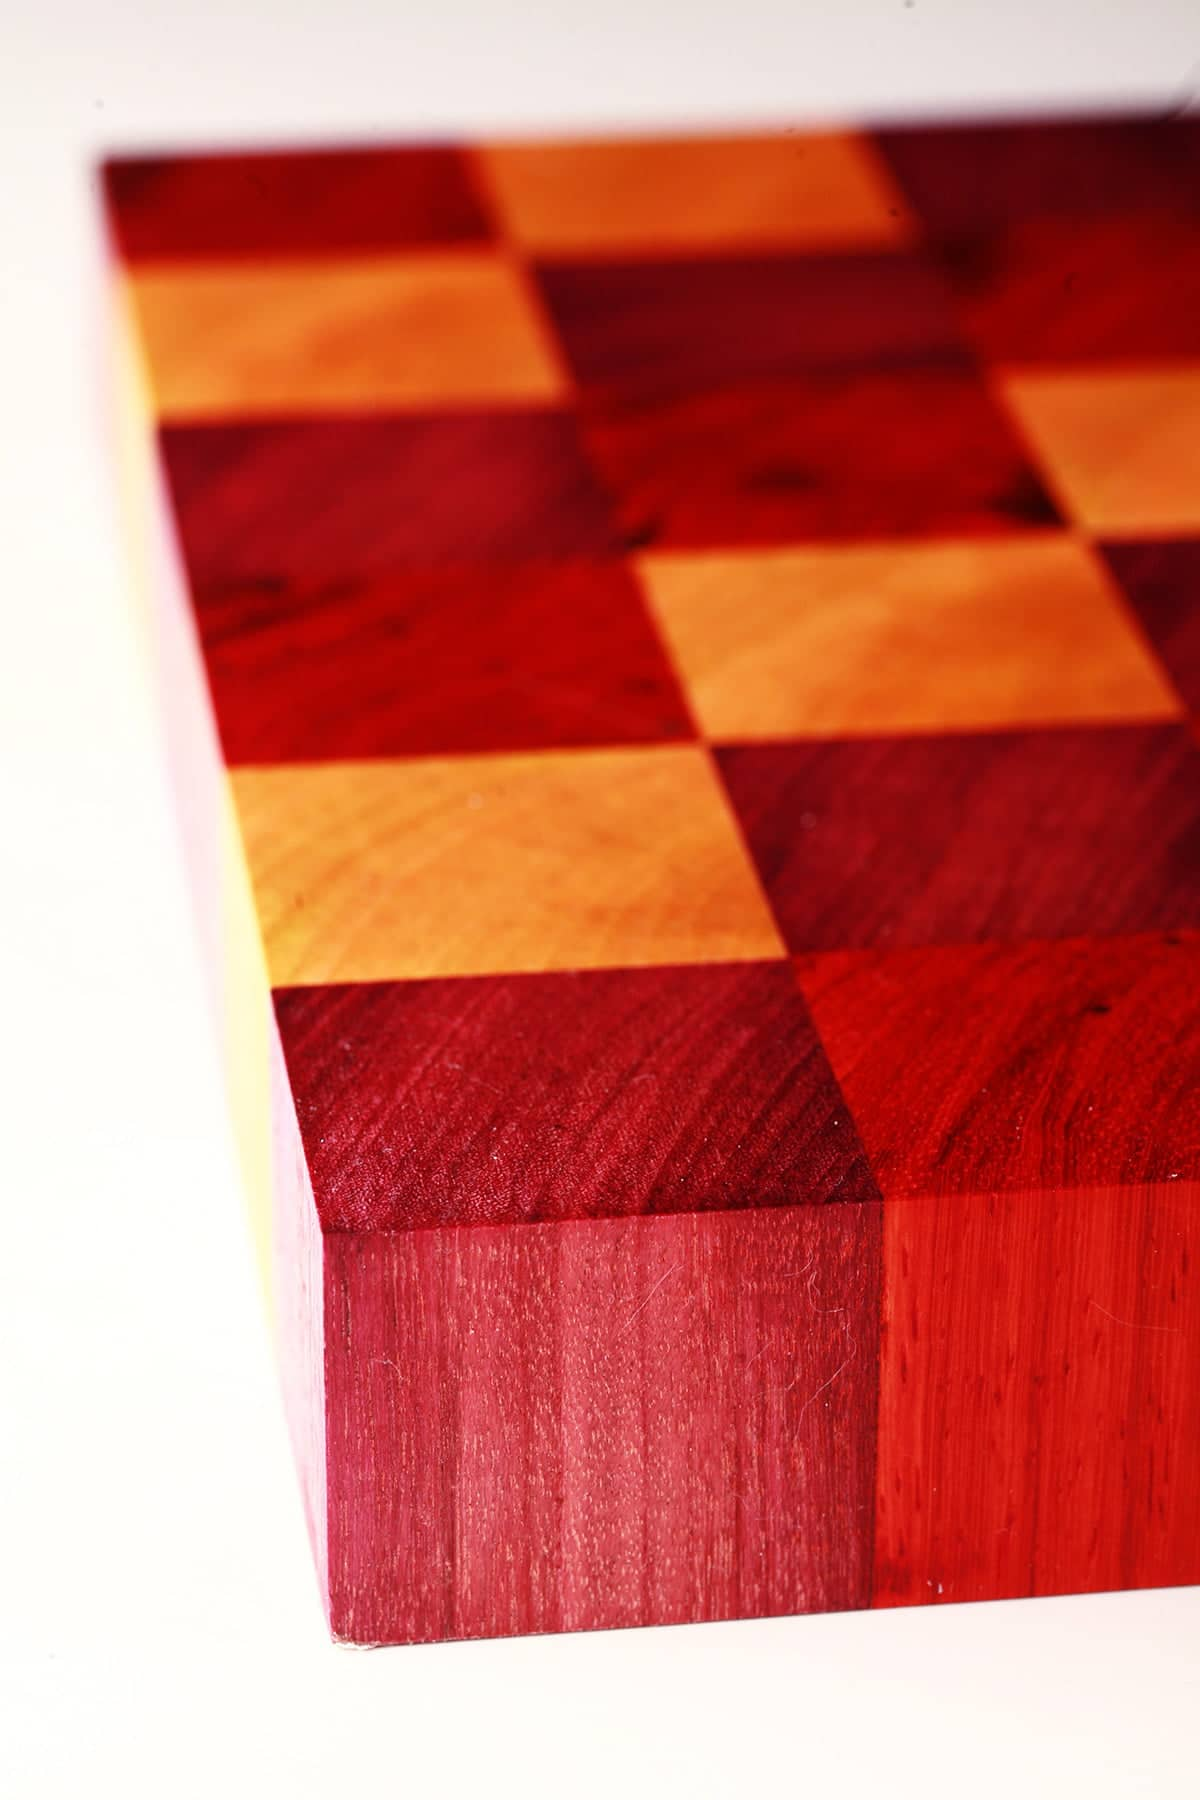 A close up view of a DIY cutting board, made up of colourful squares of wood - red, purple, and yellow.